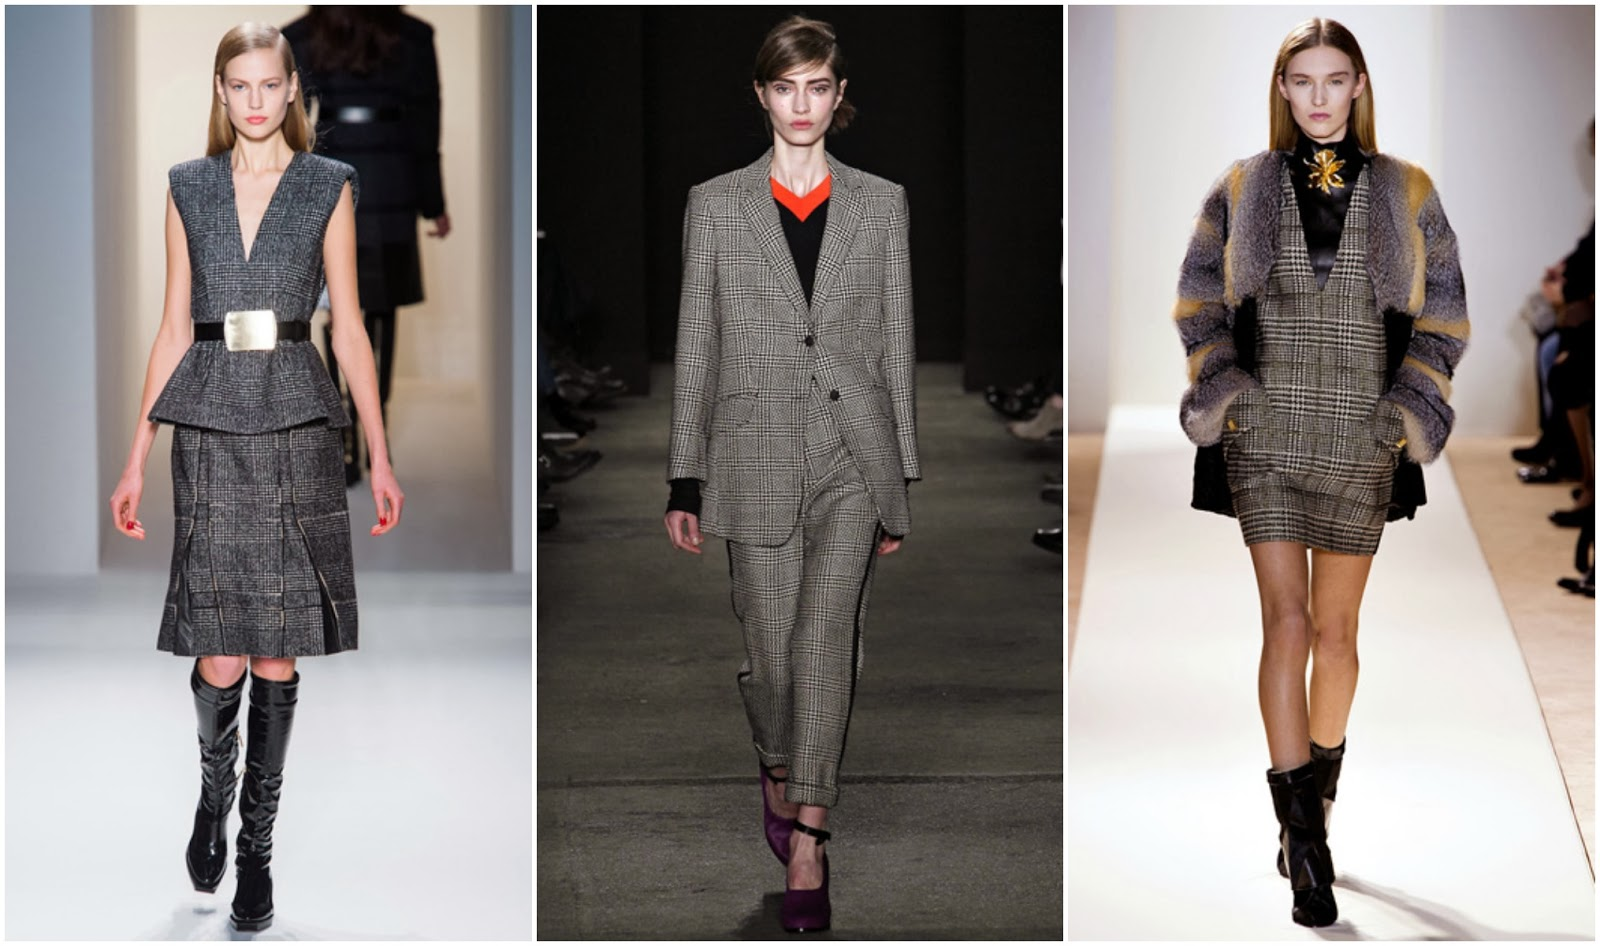 calvin klein collection-rag& bone-emmanuel ungaro-tejido principe de gales - gt fashion diary